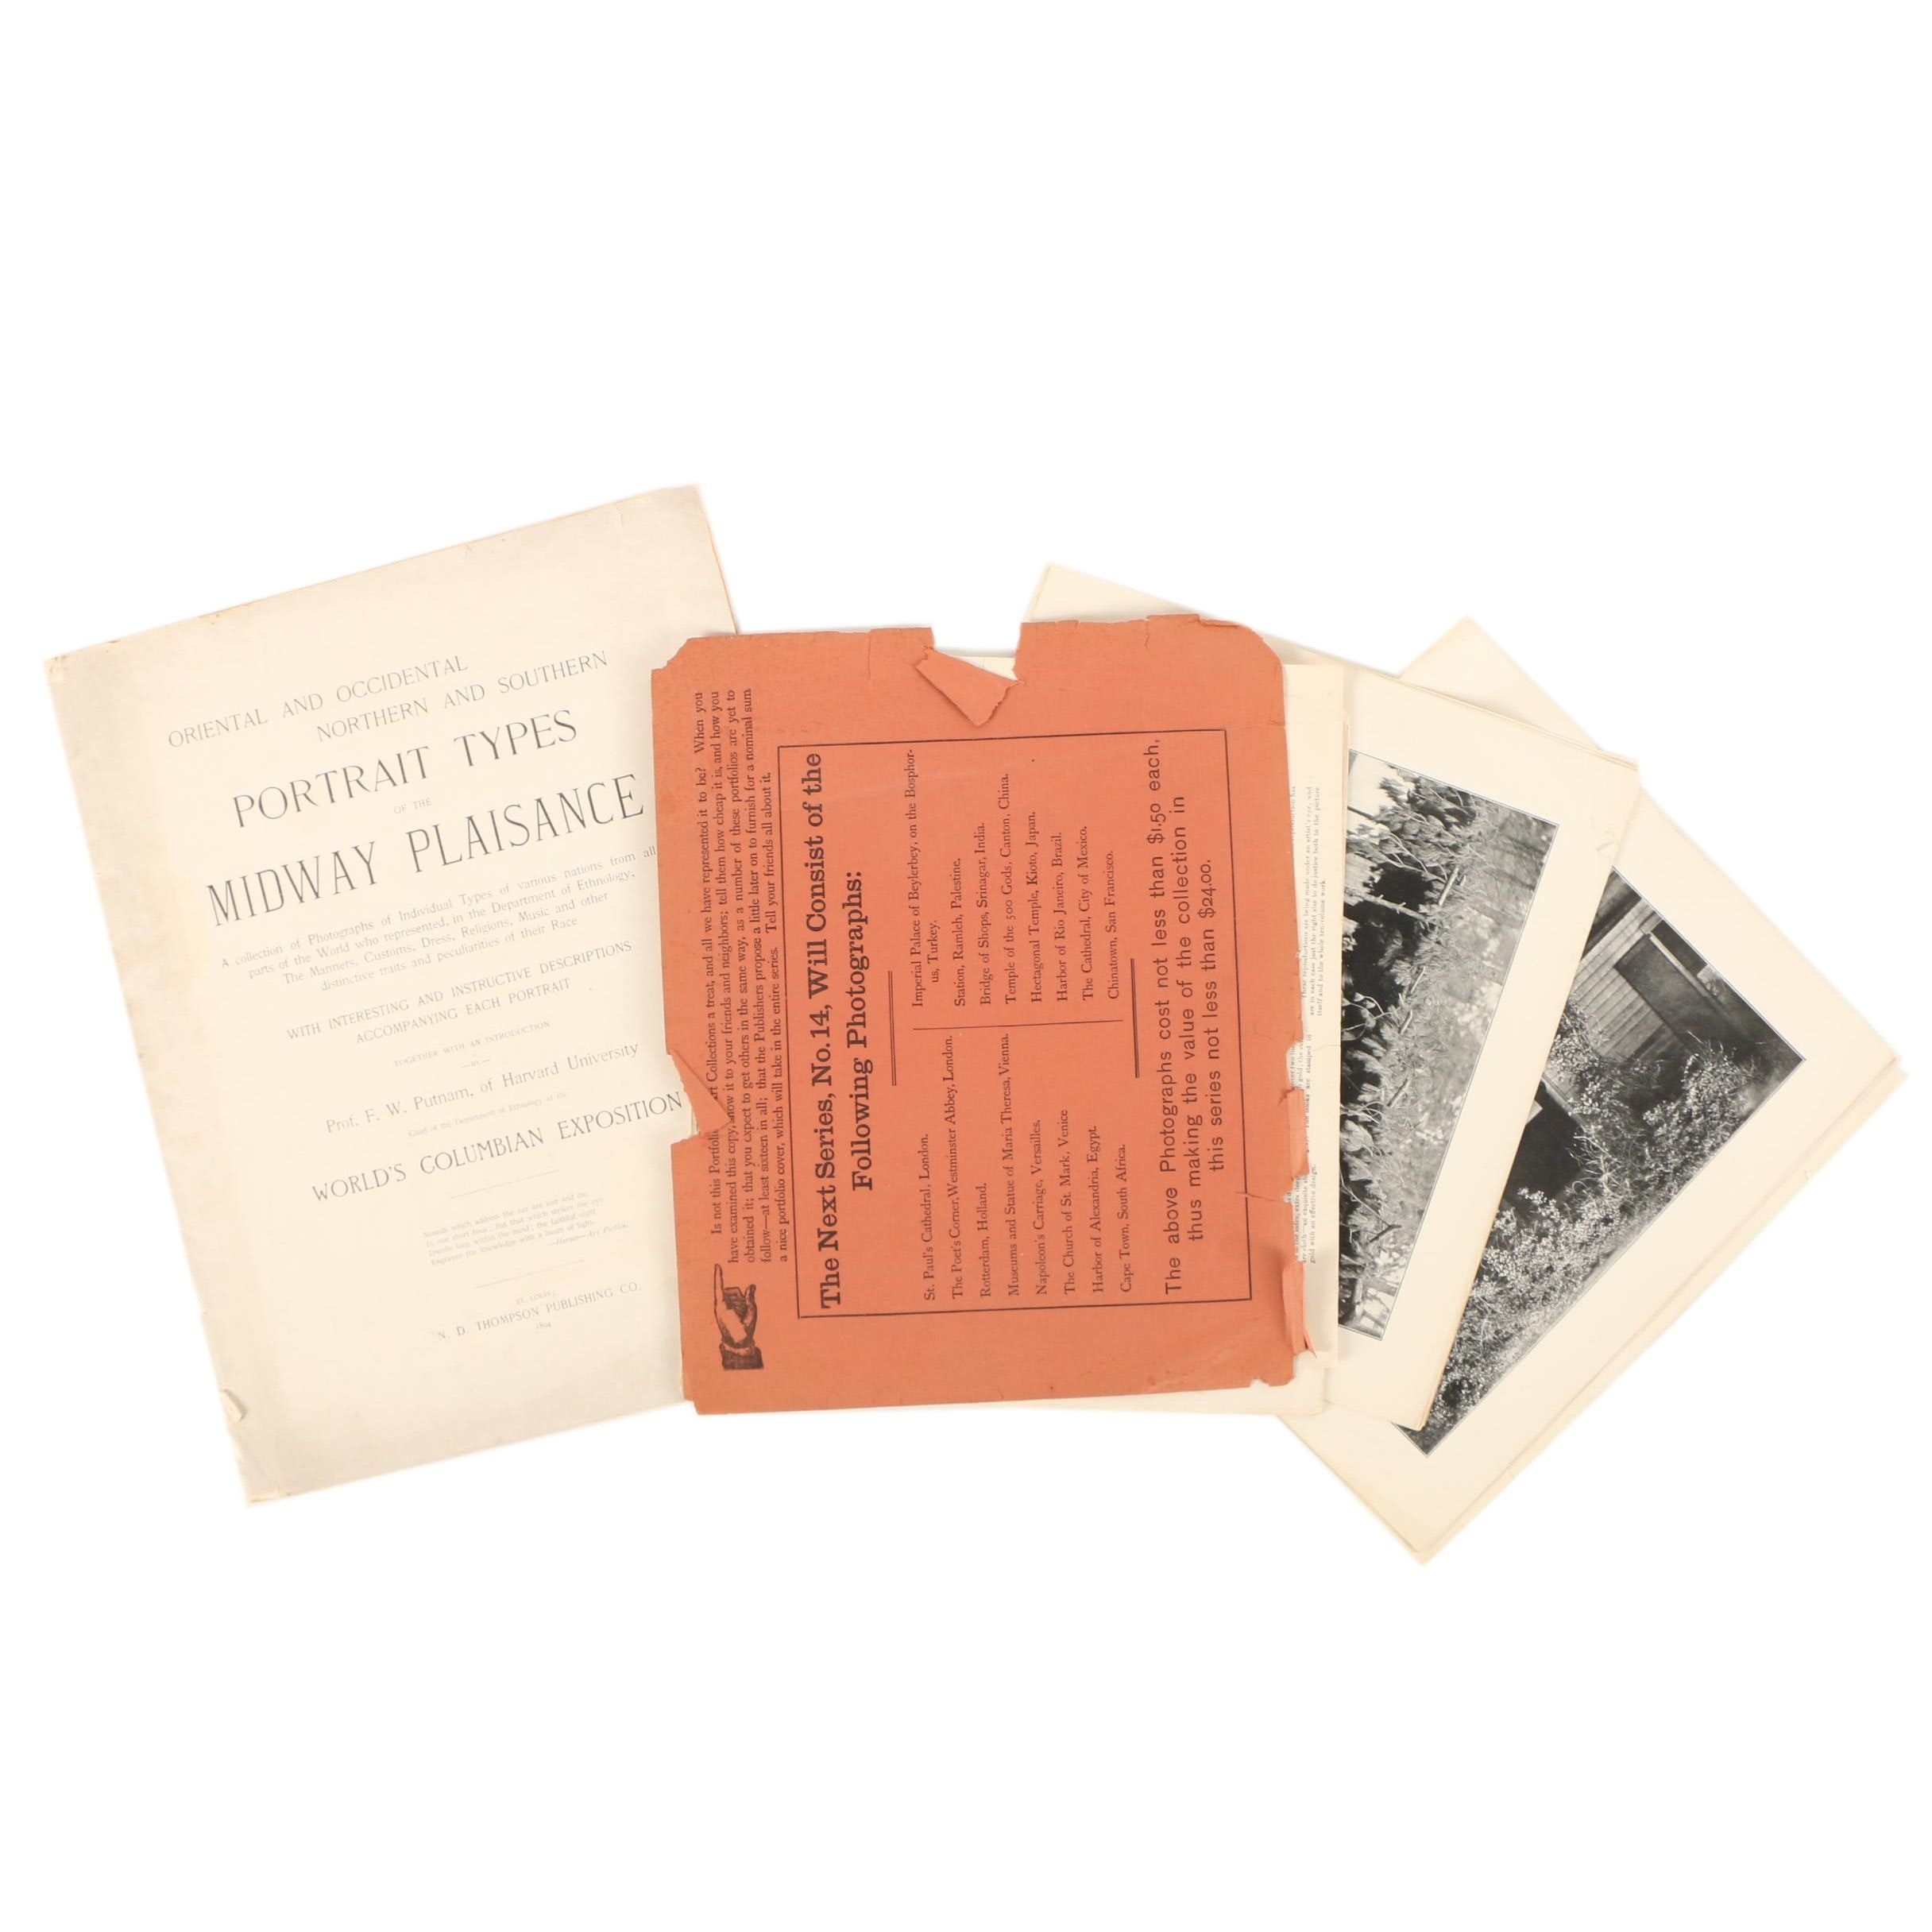 """Photographic Collection Books Featuring """"Portrait Types of the Midway Plaisance"""""""